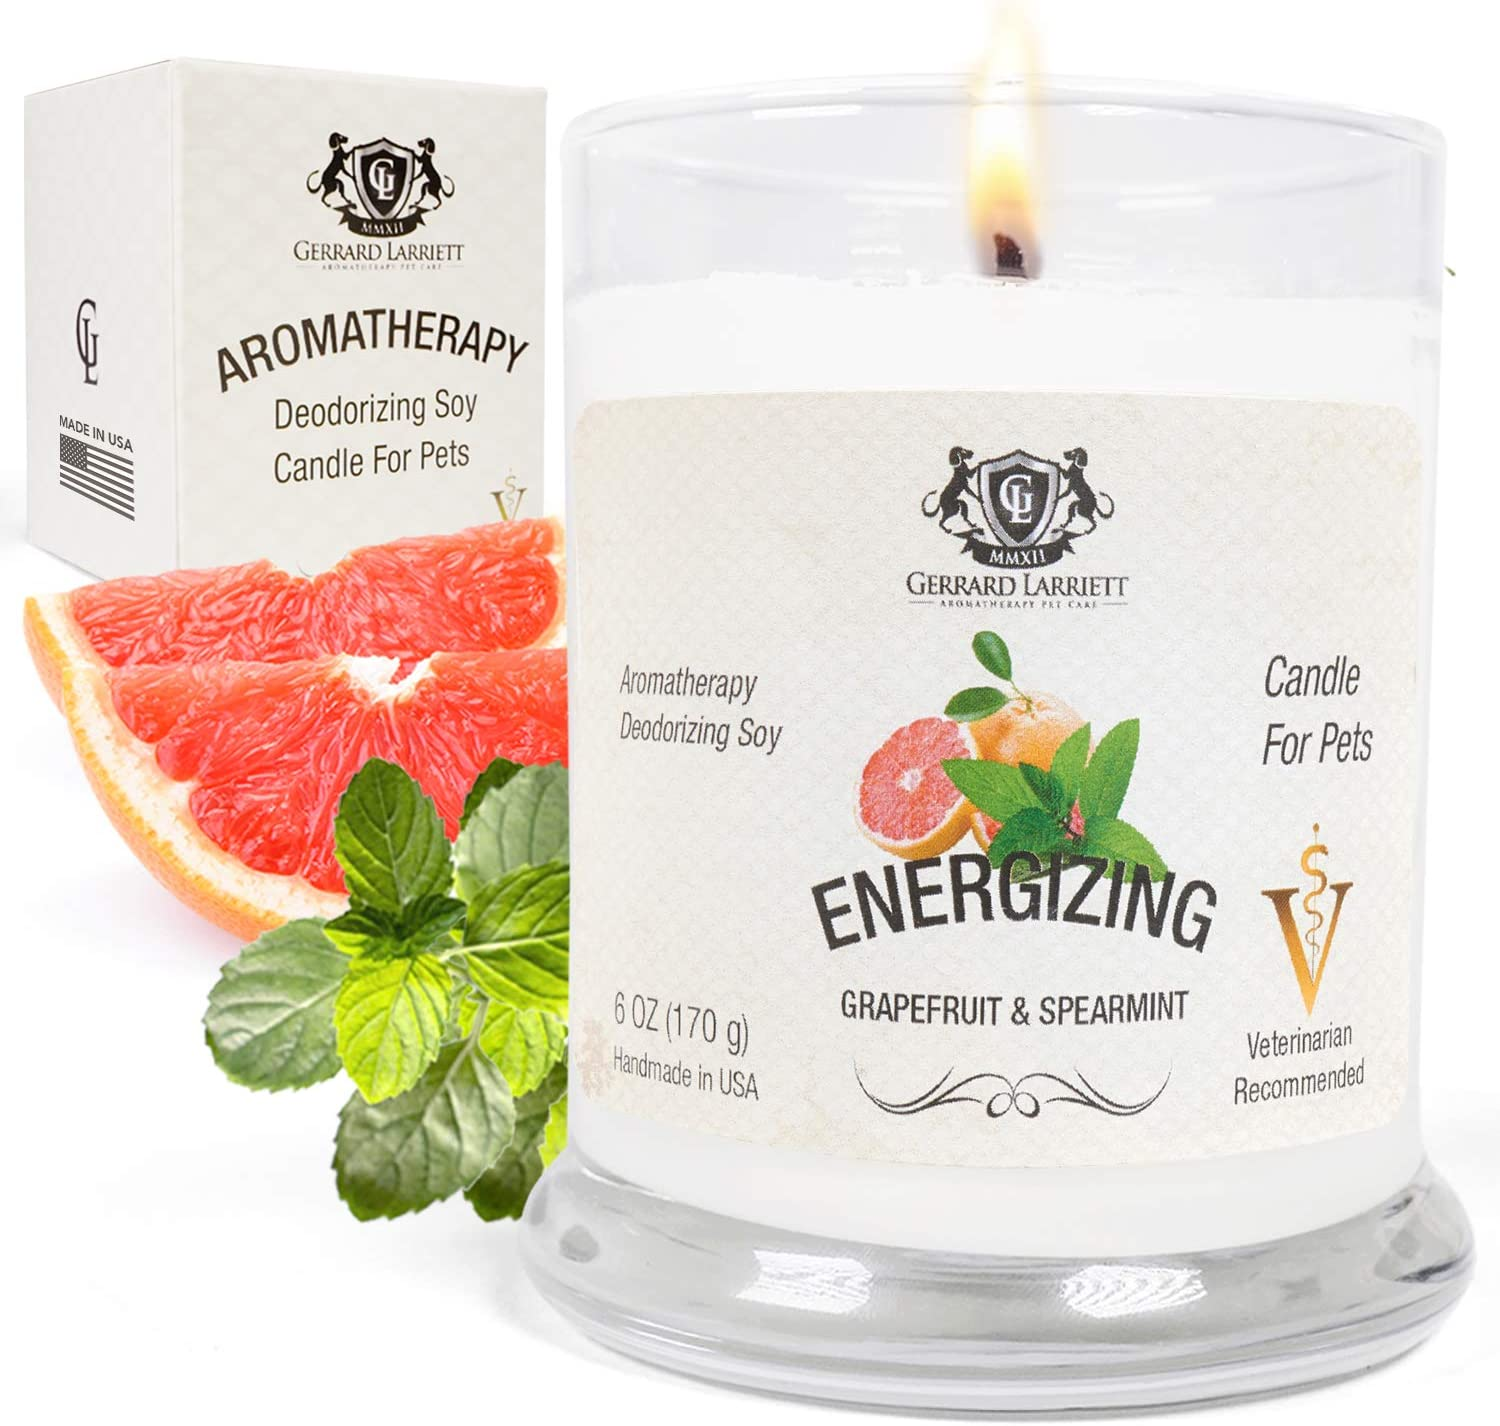 Grapefruit & Spearmint Aromatherapy Deodorizing Soy Candle for Pets, Candles Scented, Pet Odor Eliminator & Animal Lover Gift